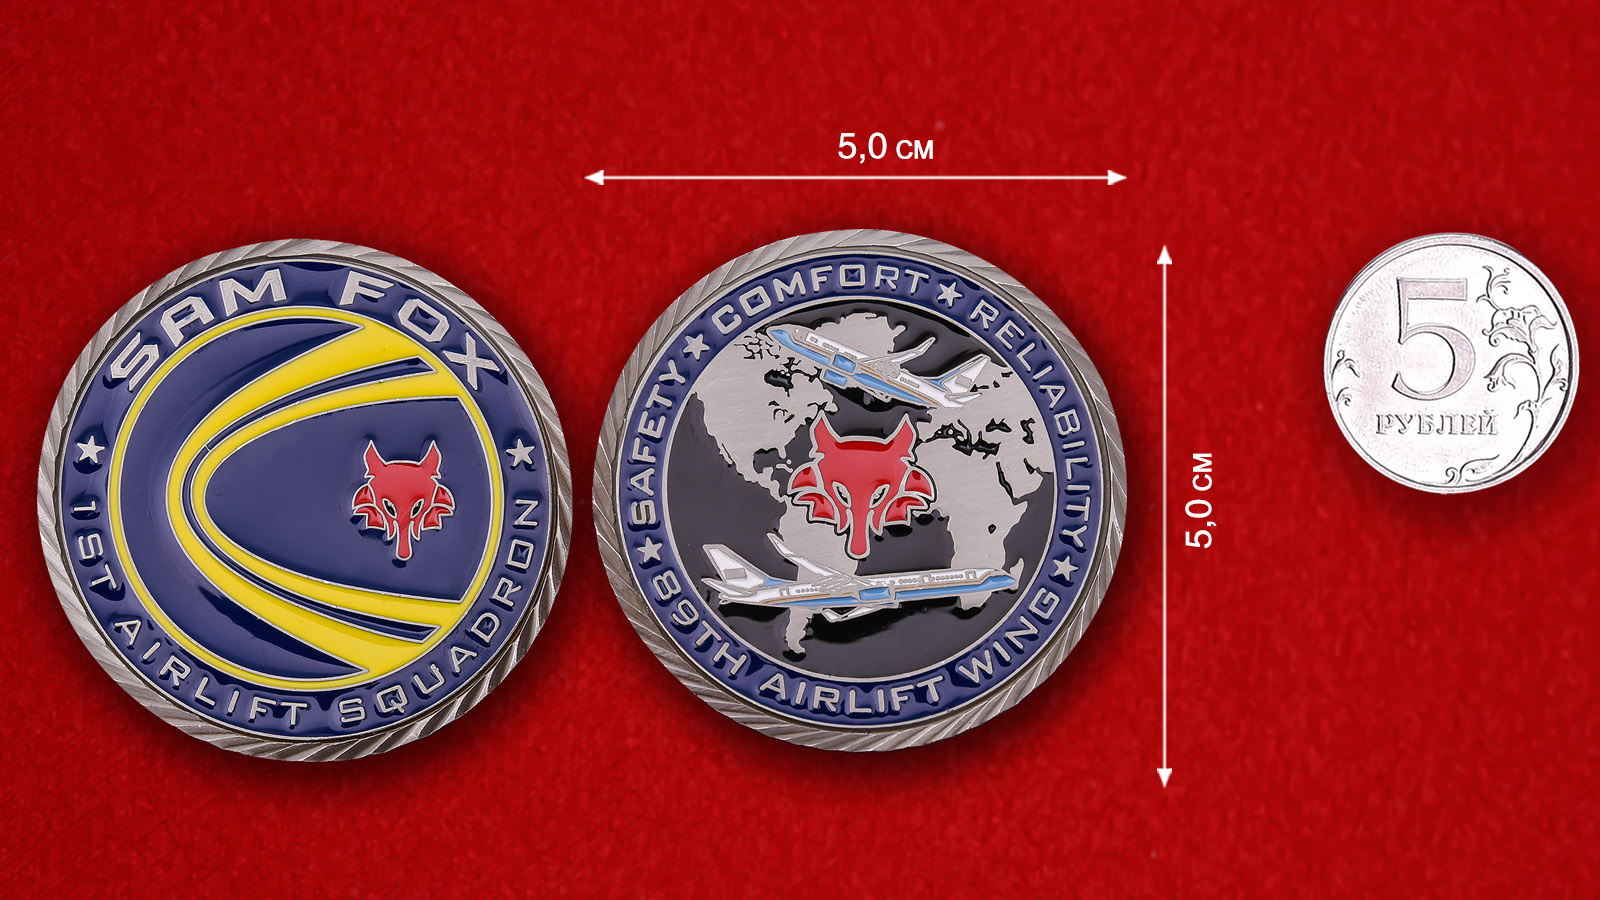 1st Airlift Squadron 89th Airlift Wing Challenge Coin